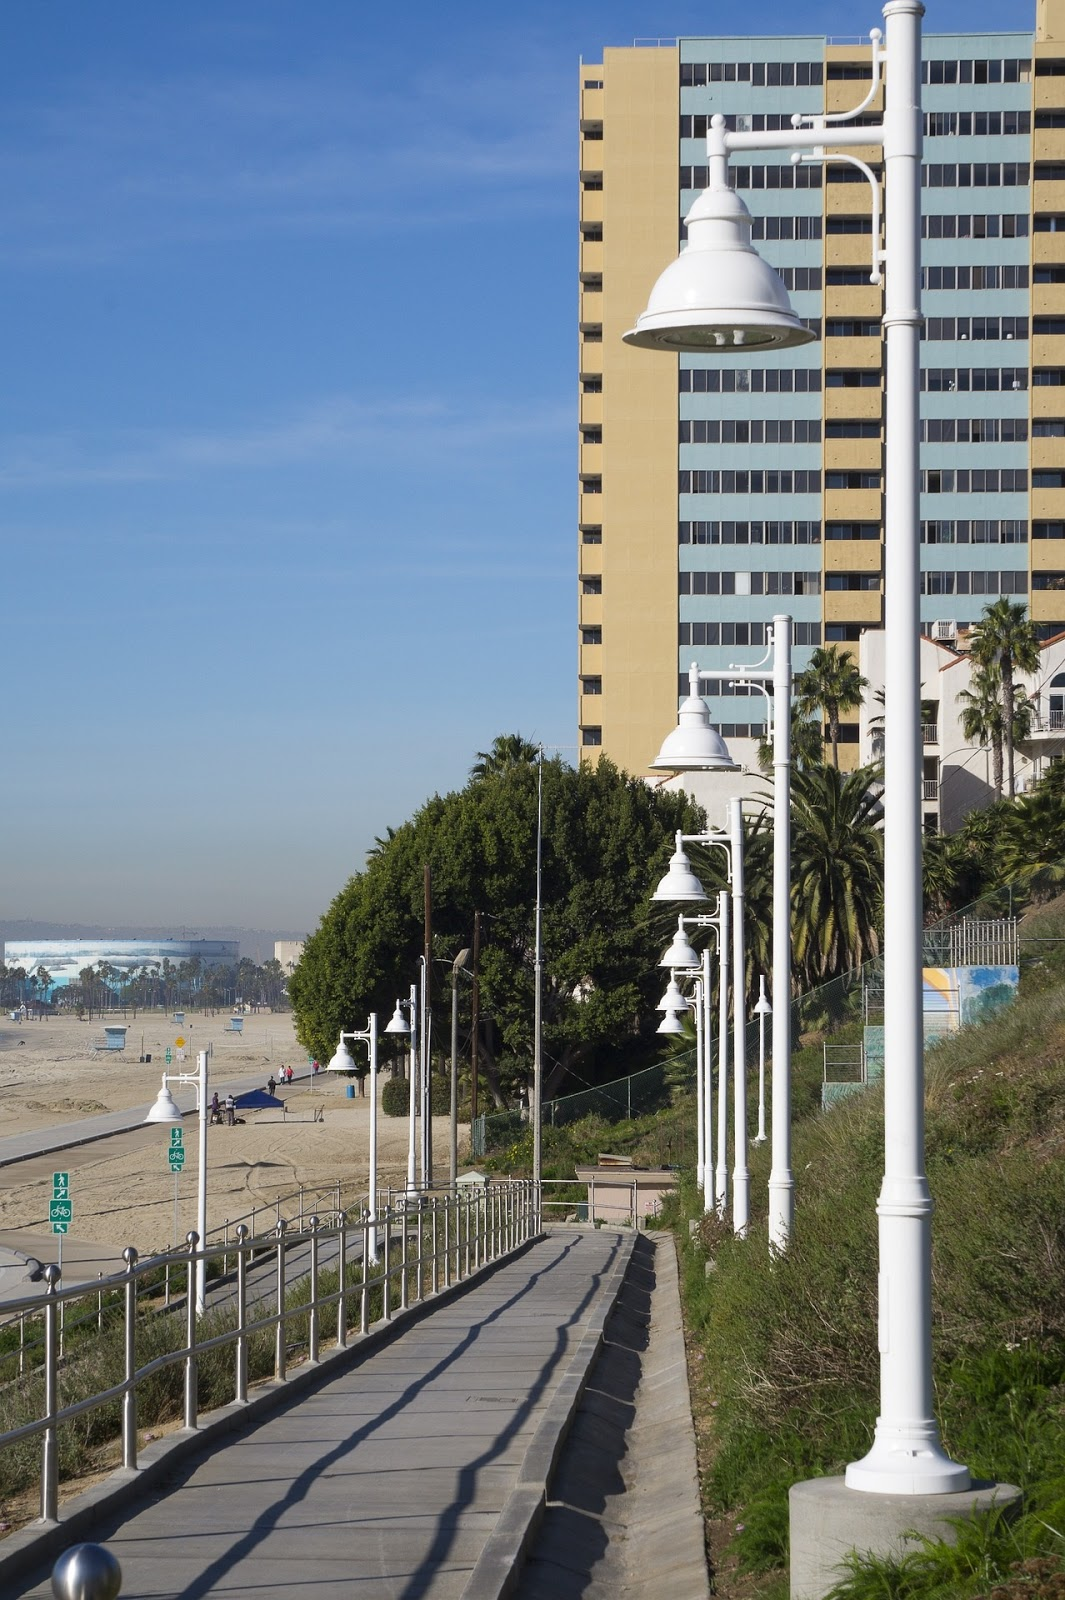 Long beachsouthern california real estate a california real estate update for some 2018 housing laws aiddatafo Images